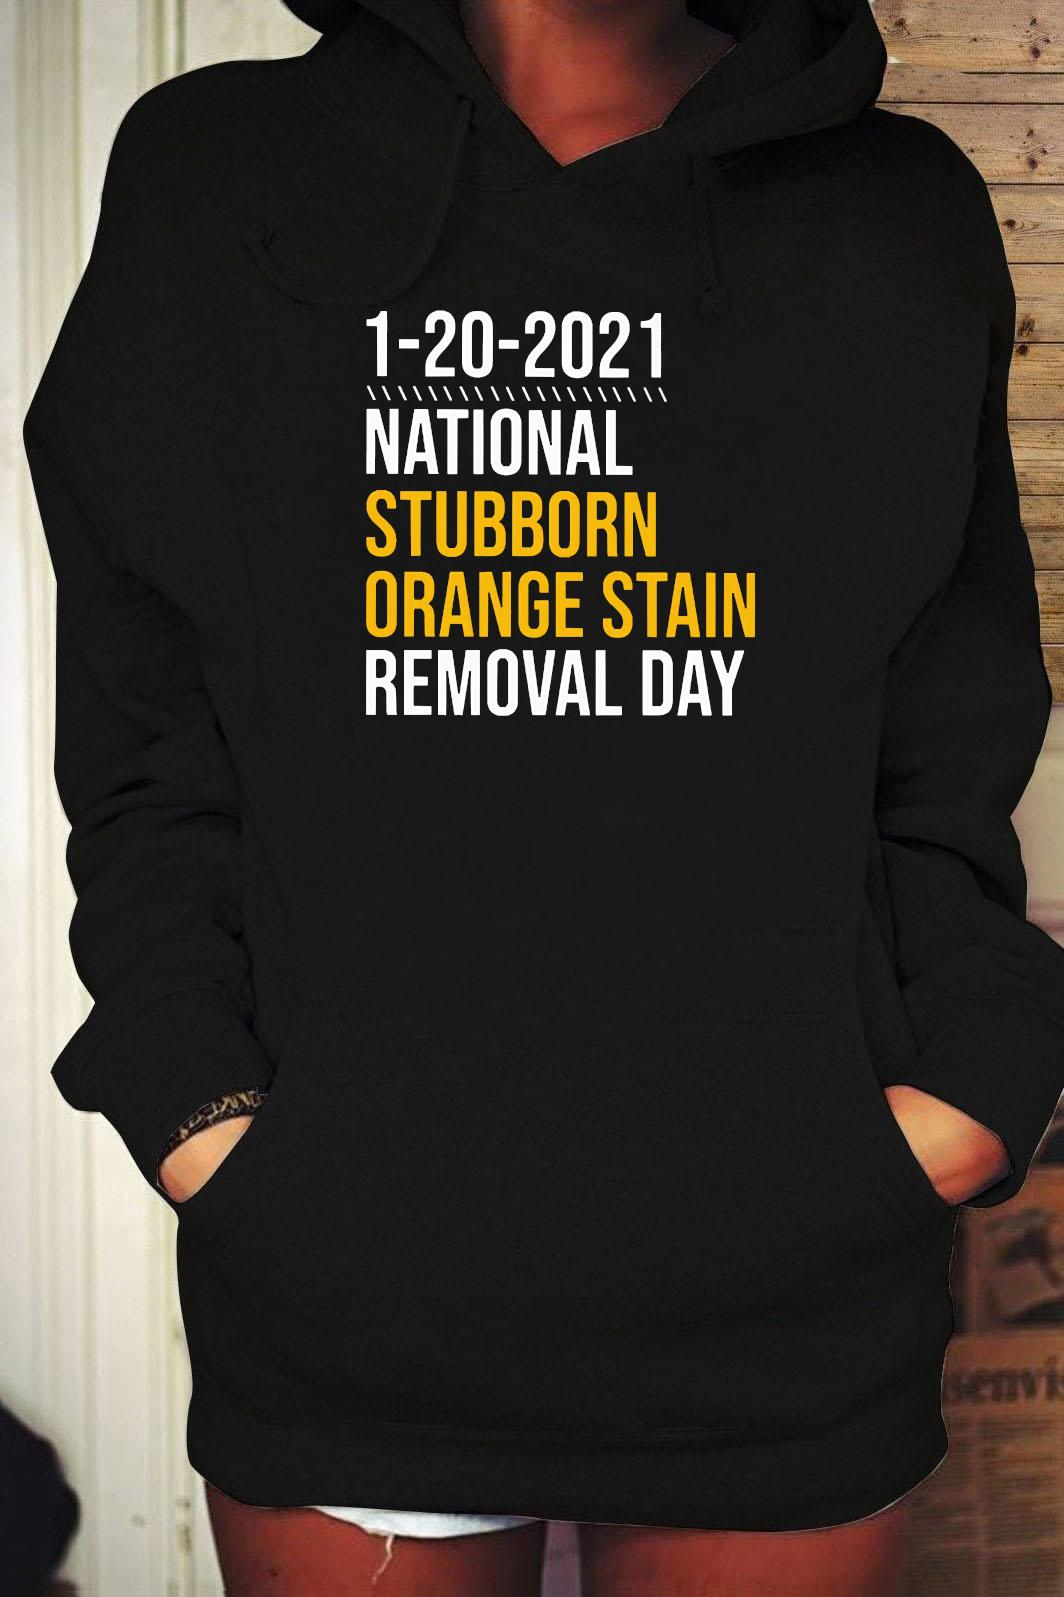 1-20-2021 National Stubborn Orange Stain Removal Day Shirt Hoodie